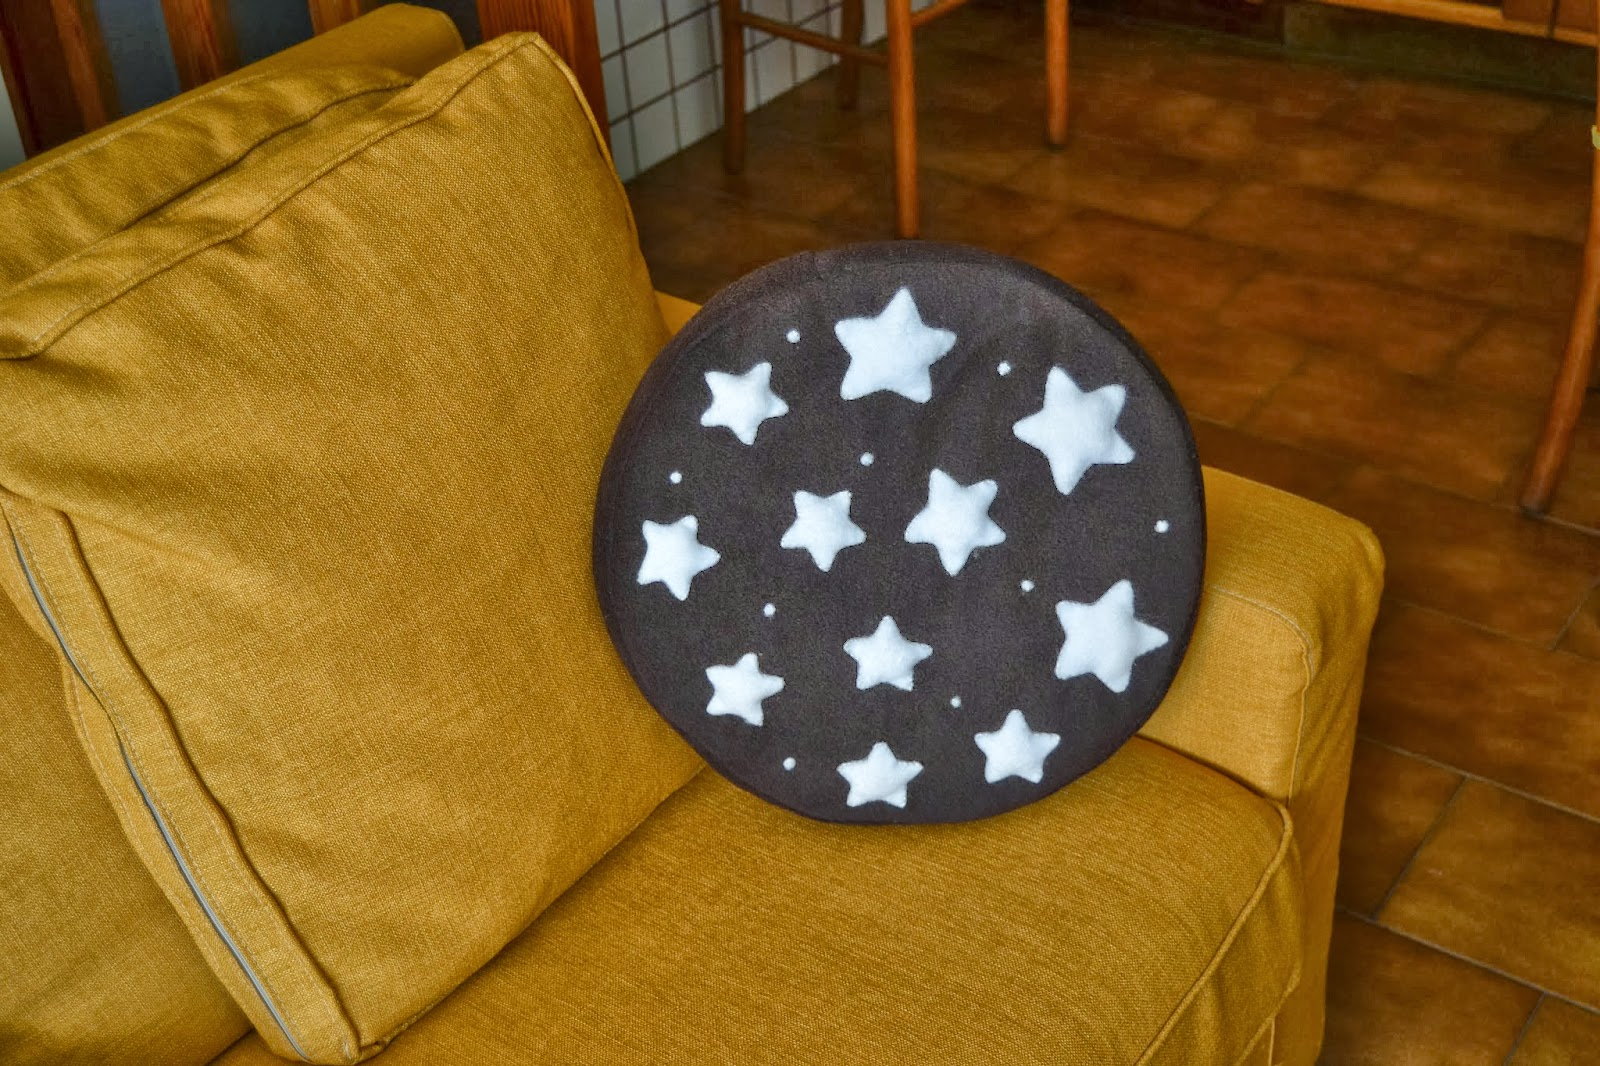 Cuscino Pan Di Stelle Tutorial.Liis Plush Cuscino Pan Di Stelle